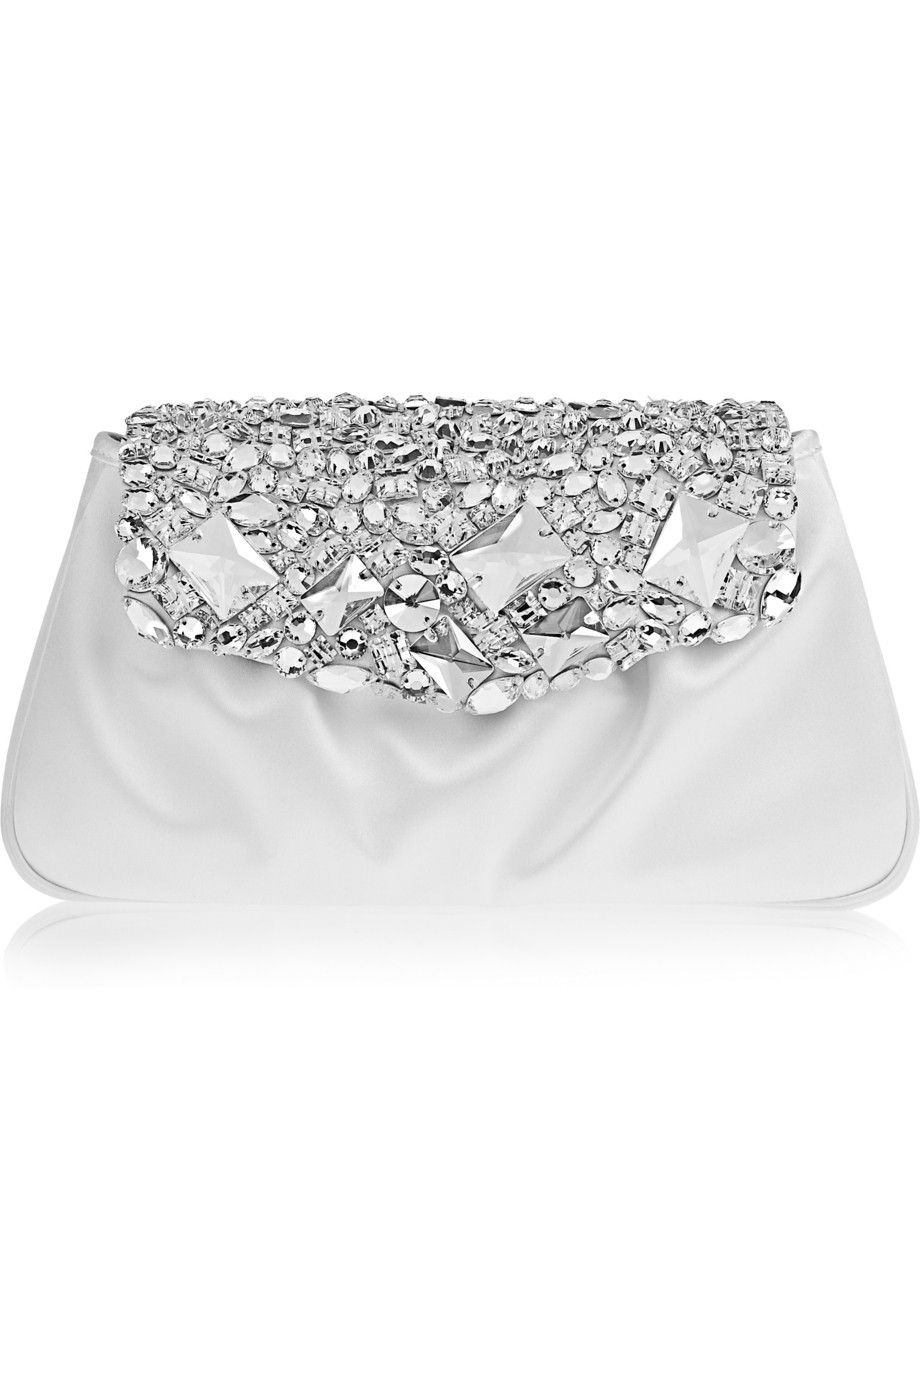 3ce68a7c3af5 Yves Saint Laurent  Swarovski Crystal-Embellished Satin Clutch- perfect  white evening clutch